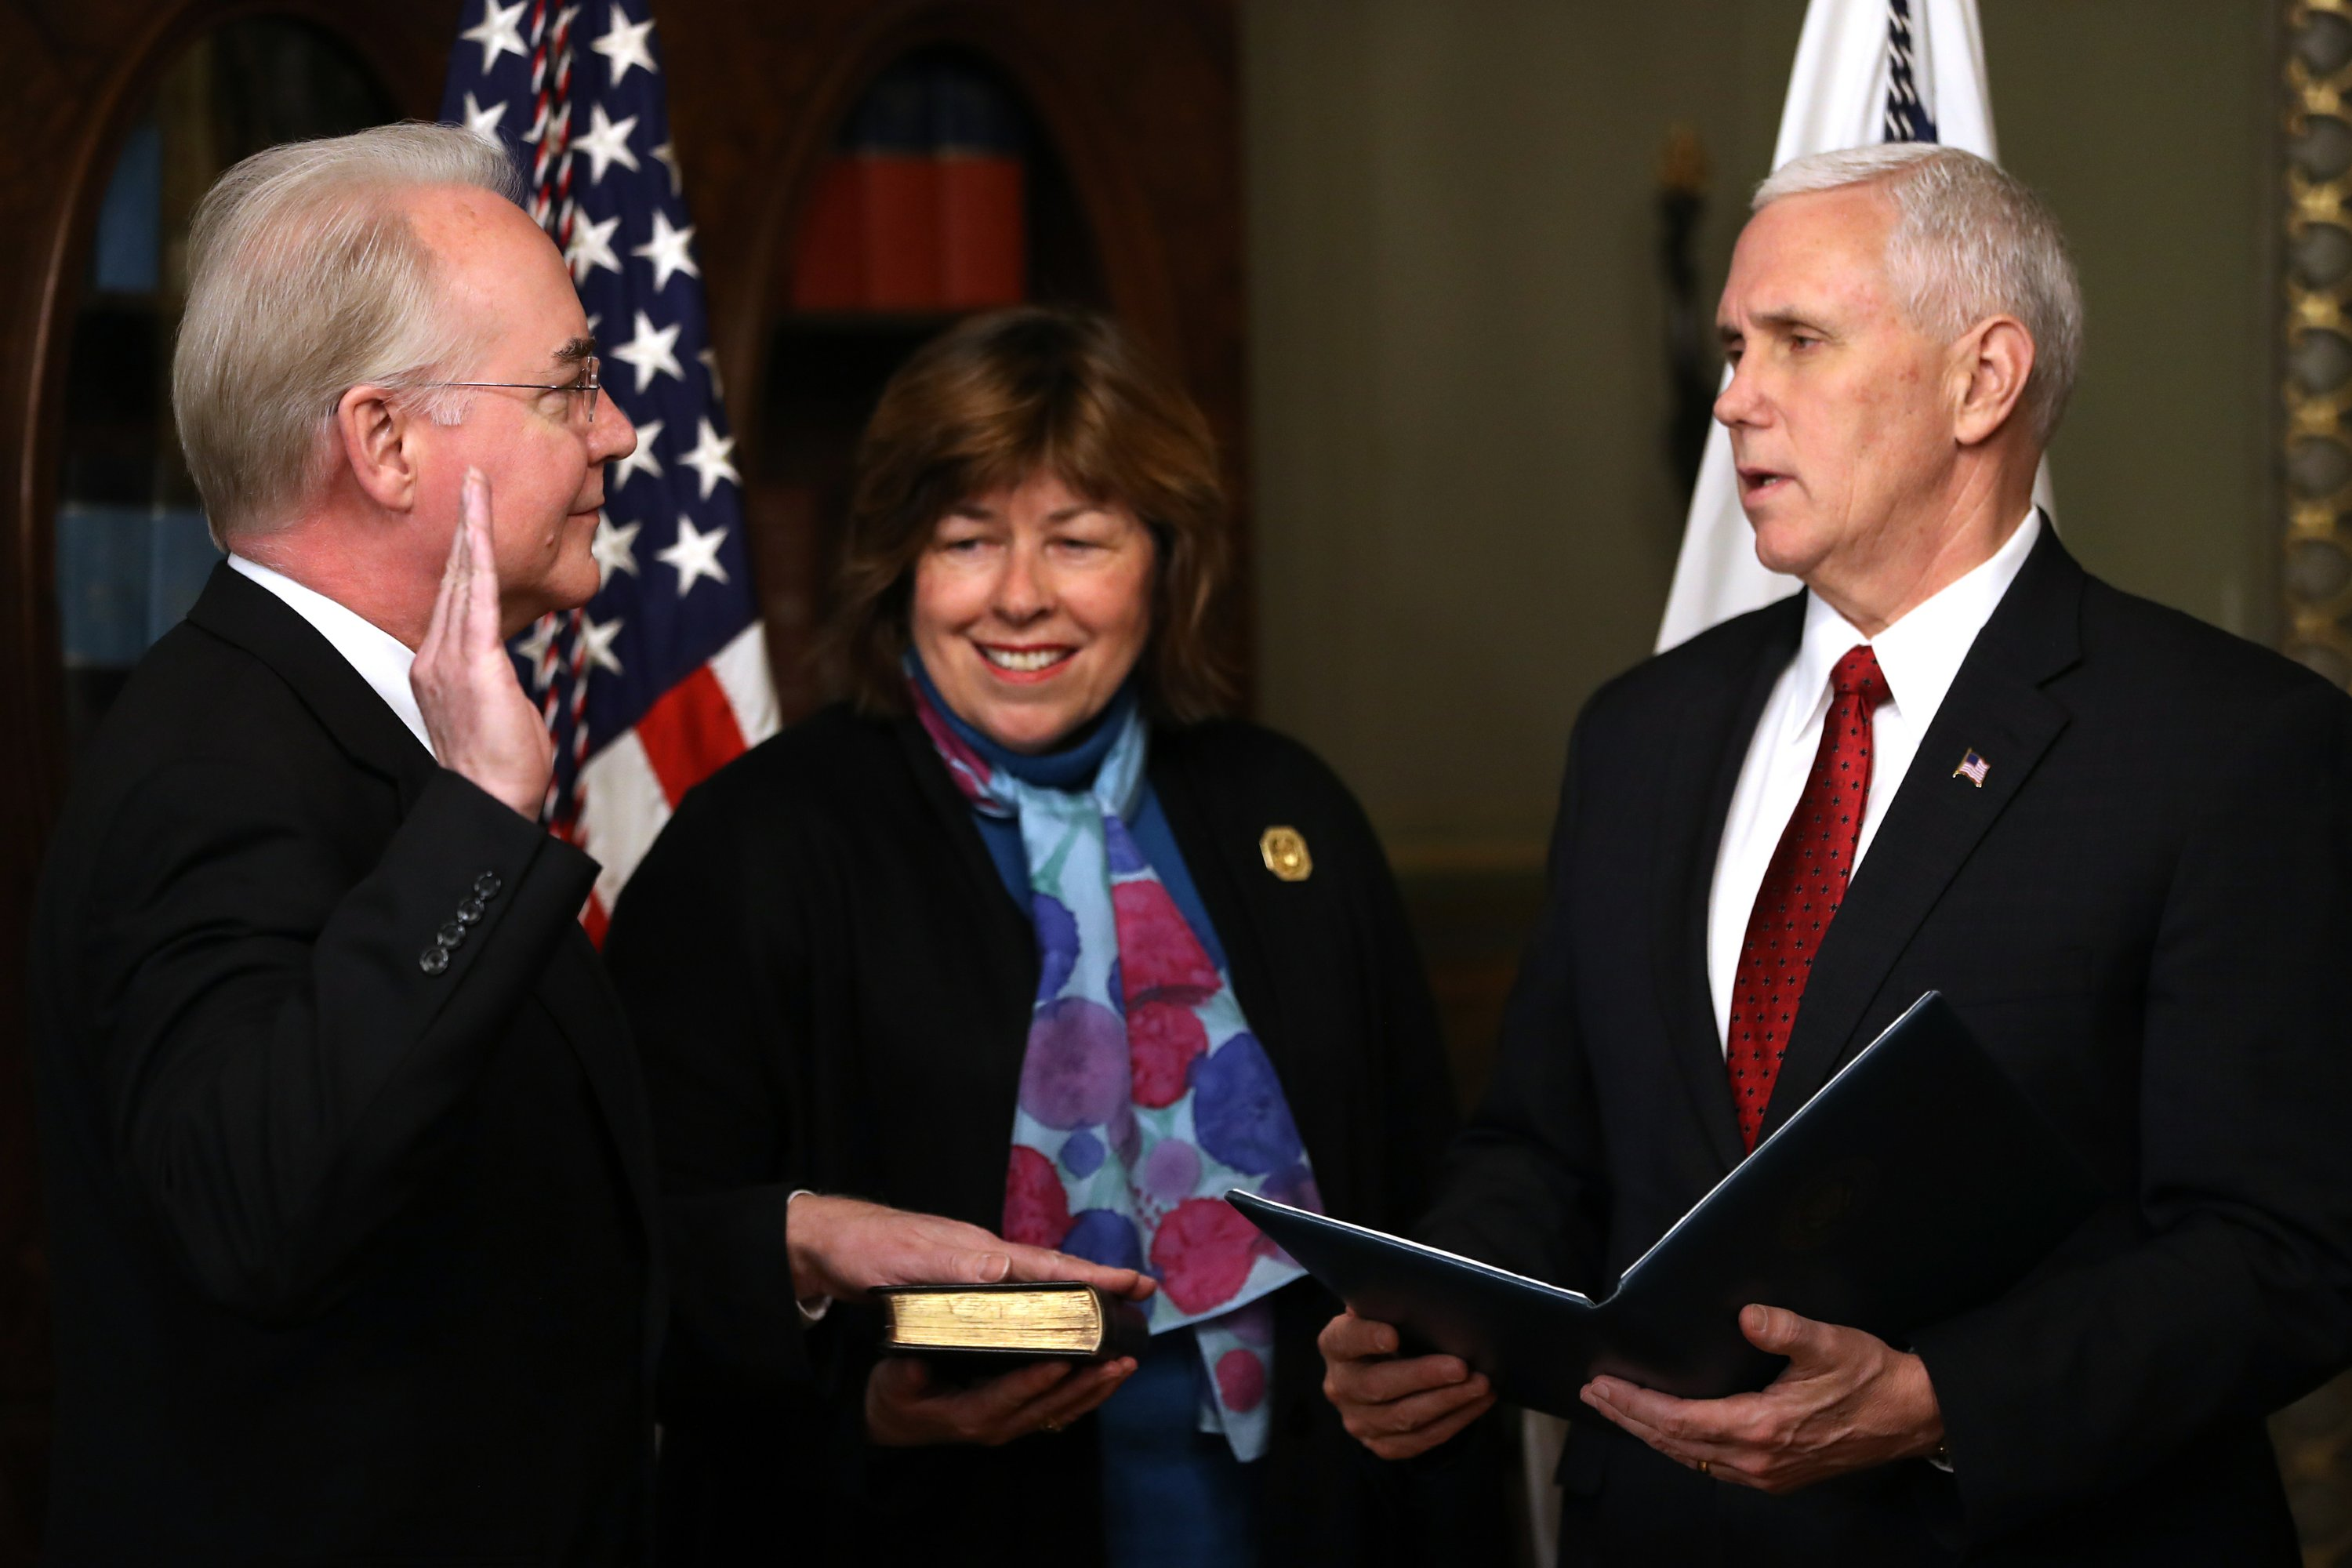 Trump's pick for health and human secretary takes office